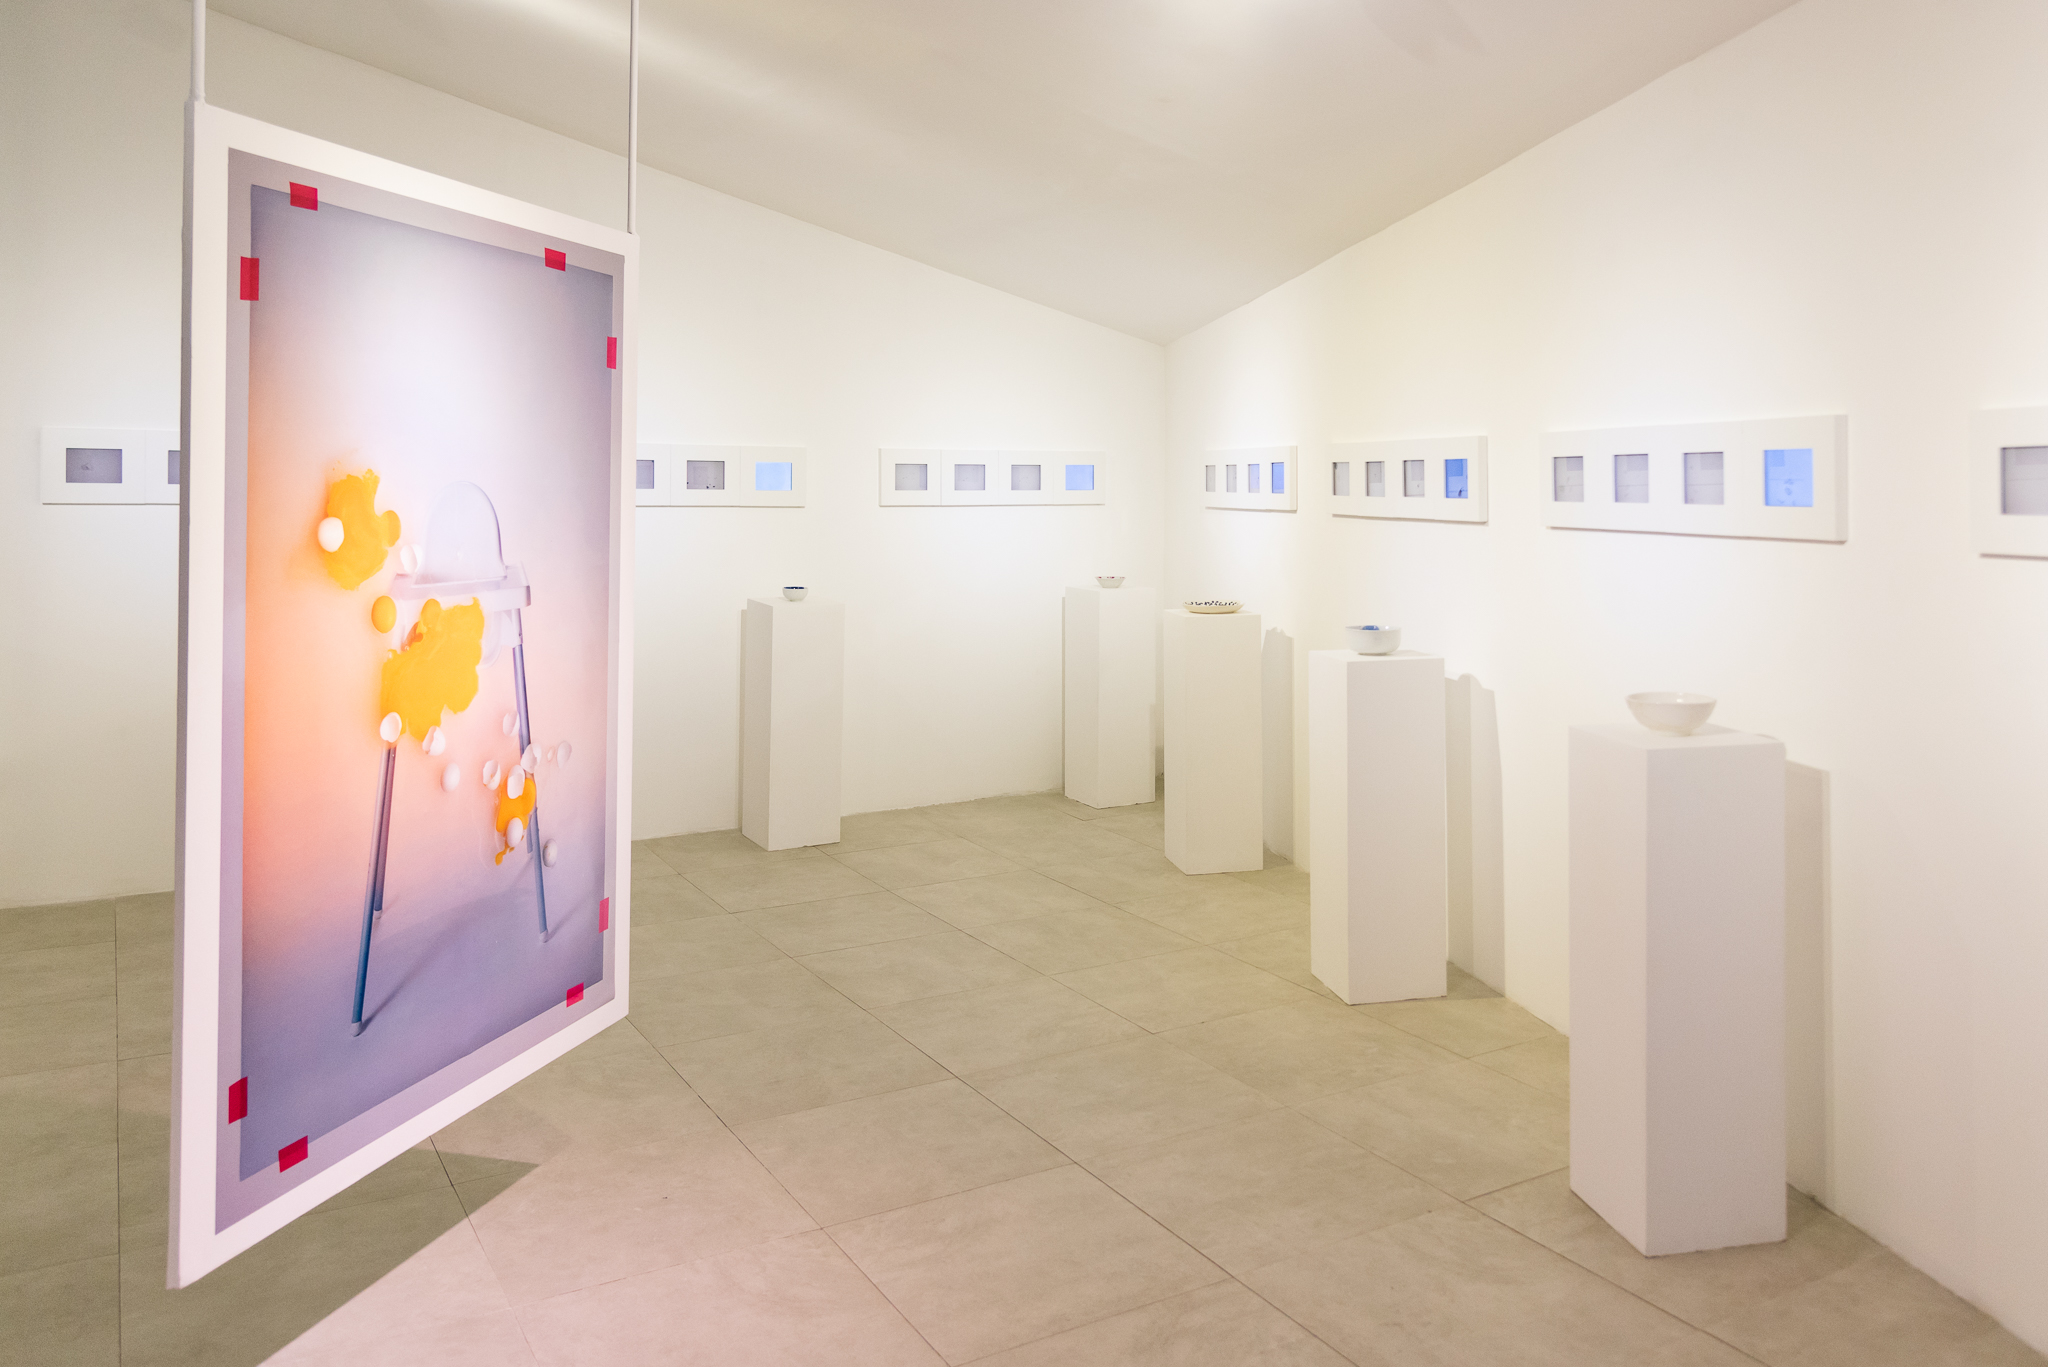 Installation view of 'My Marriage'. Image courtesy of The Factory.